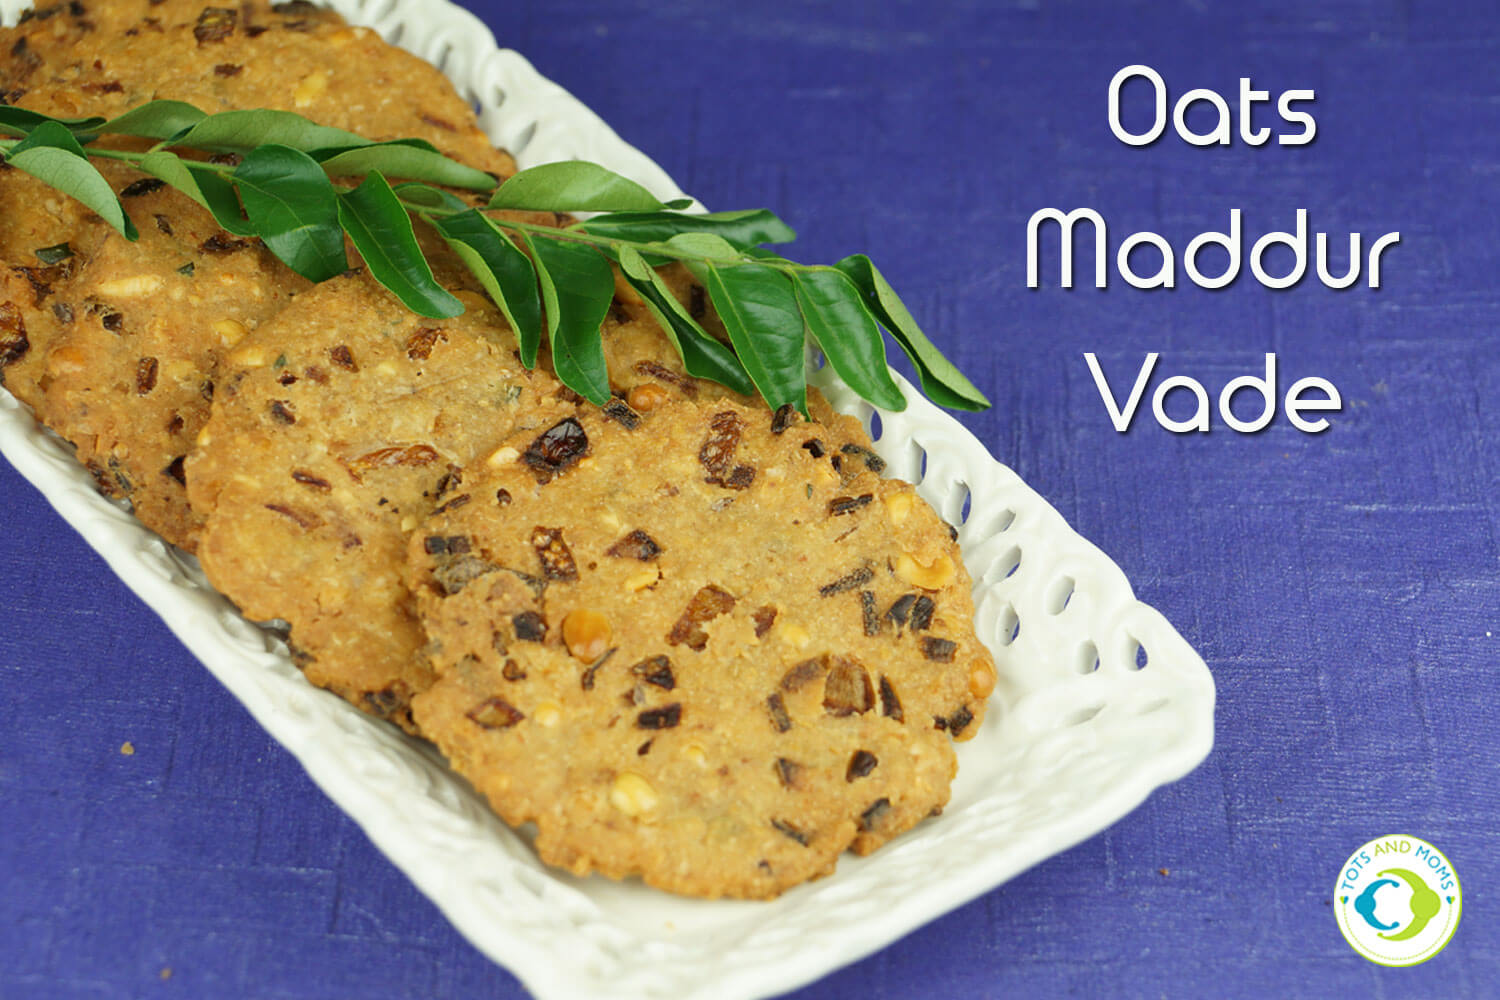 MADDUR VADA for Toddlers, Kids & Family snack recipe